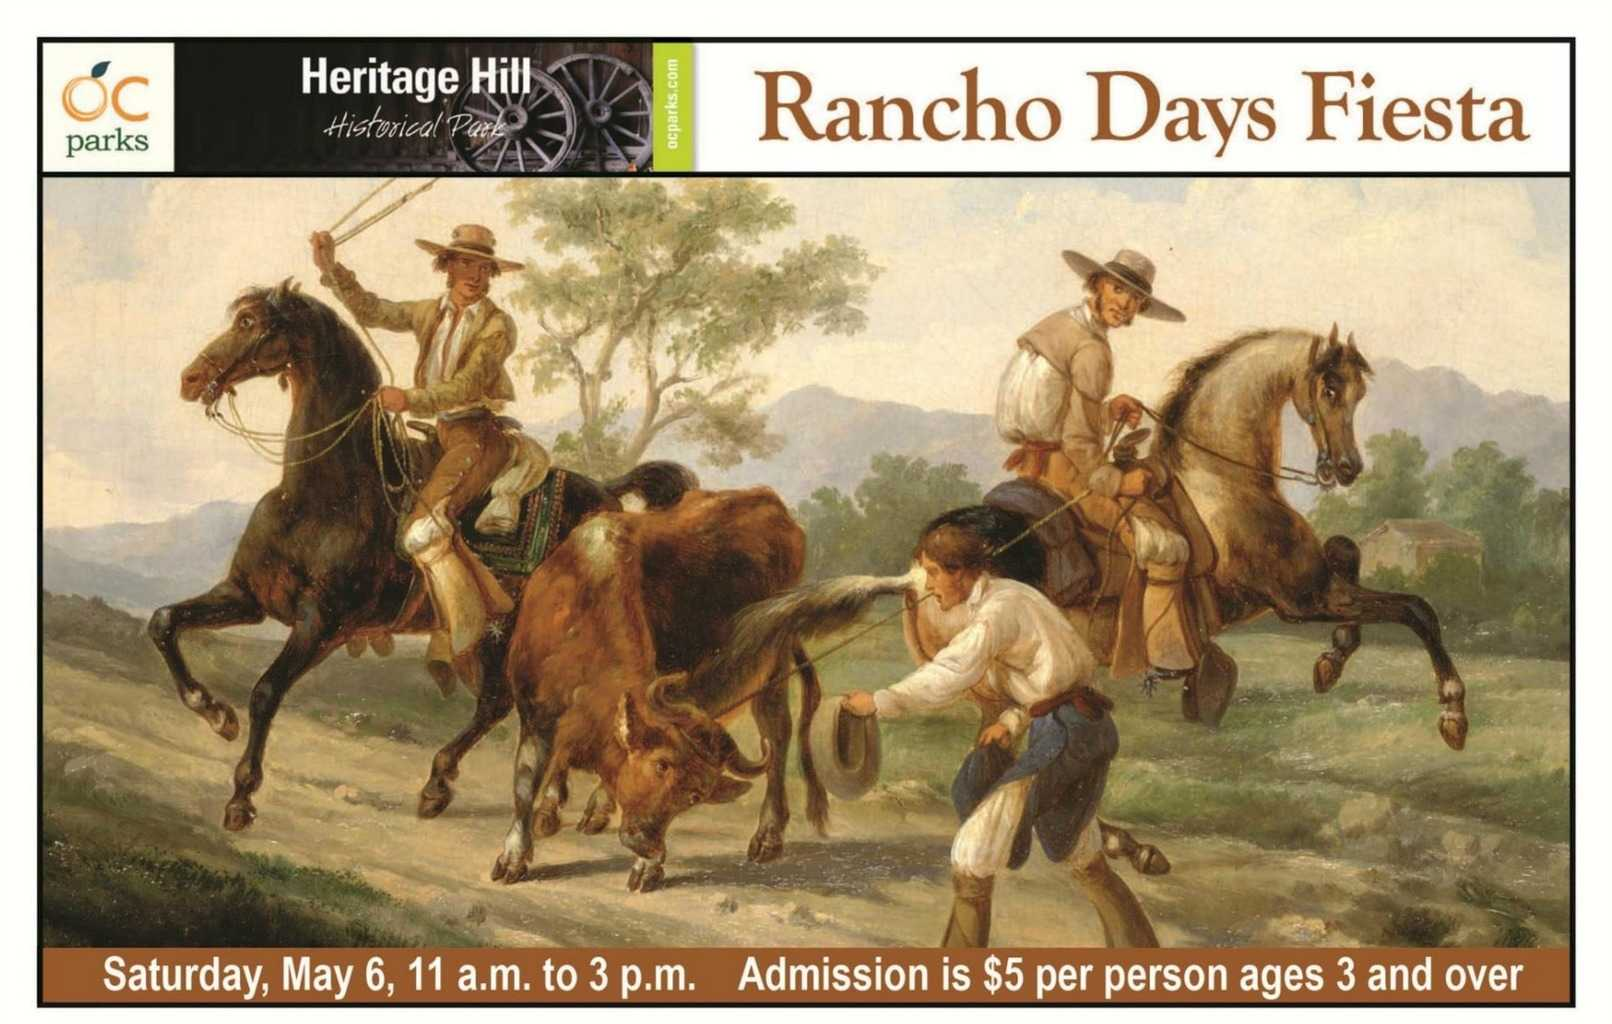 Is your child learning about California history? Then take them to Rancho Days Fiesta at Heritage Hill Historical Park in Lake Forest on May 6! Travel back in time to the days of the rancho era, and enjoy hands-on activities, music, dance, and more. There will also be a wide variety of activities and demonstrations for the family including piñata breaking, butter churning, and candle dipping.